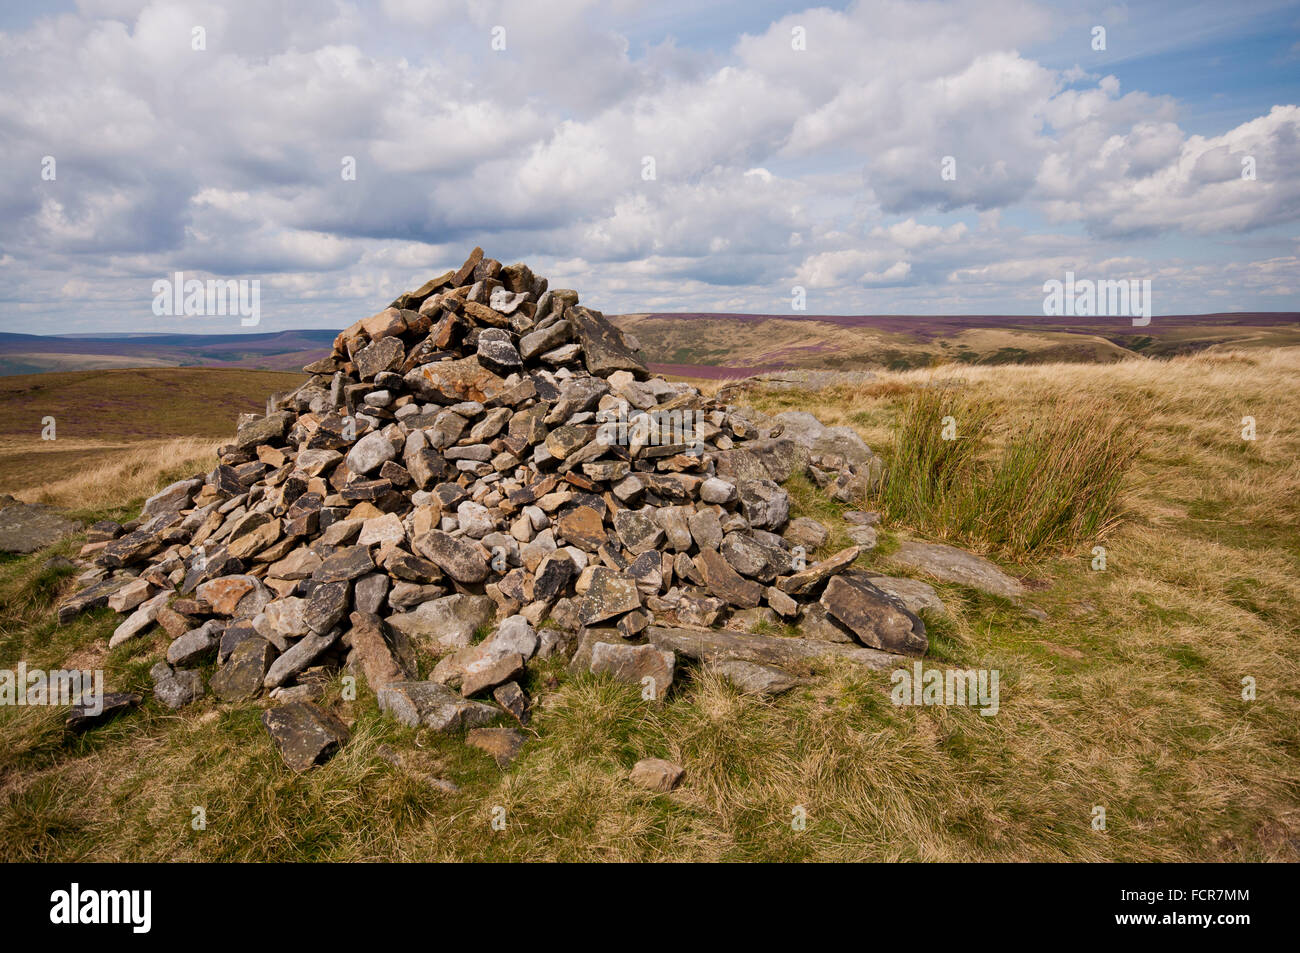 Summit Cairn on Lost Lad in the Peak District National Park. - Stock Image